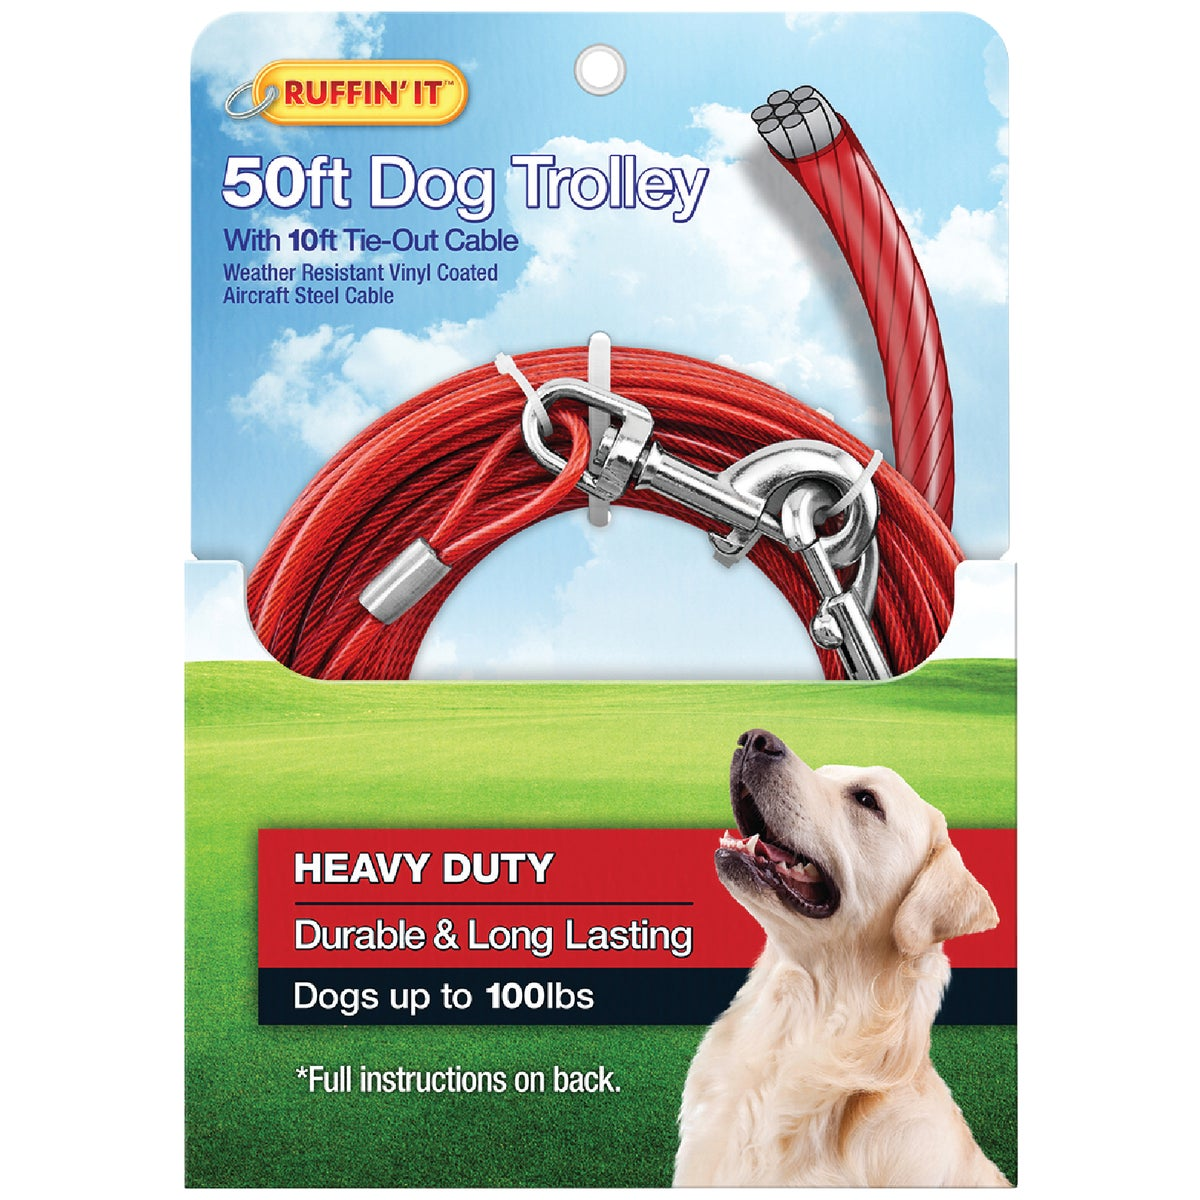 Westminster Pet 50'TIE-OUT CABLE TROLLEY 29450